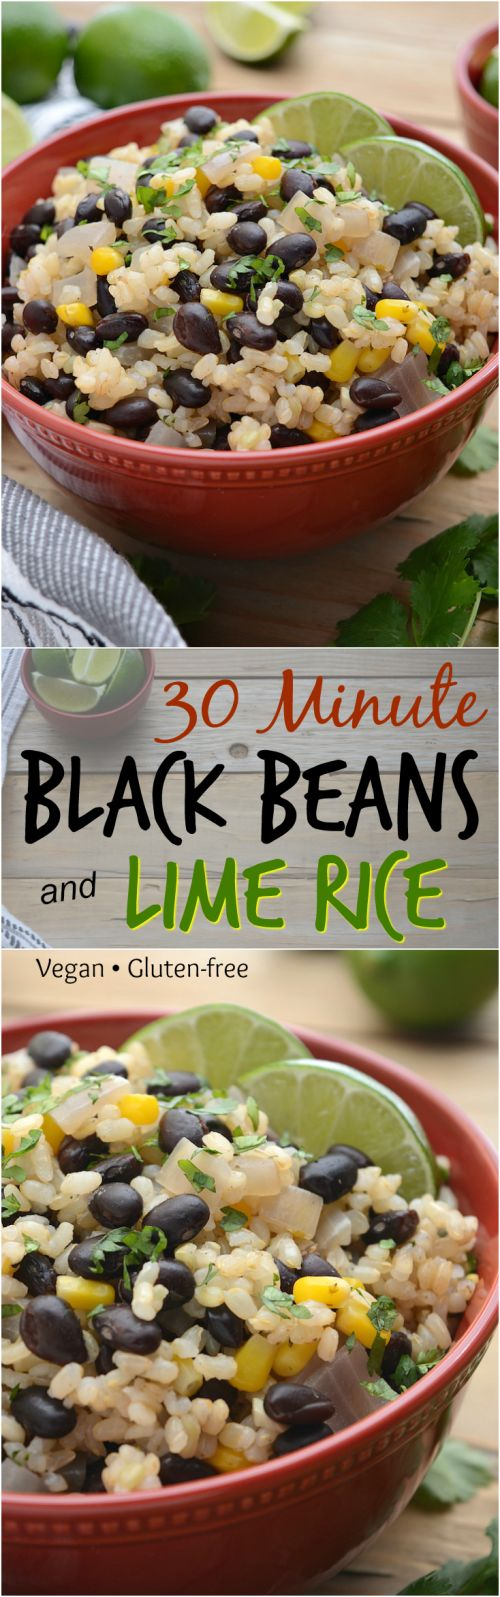 Quick and easy, 30 minute Black Beans and Lime Rice! With a few simple ingredients you've got a great week night dinner, and leftovers make for an ideal lunch! The beans are perfectly spiced with cumin, paprika and optional cayenne. The lime rice adds an authentic 'gotta have it taste', and a handful of cilantro completes the bowl!